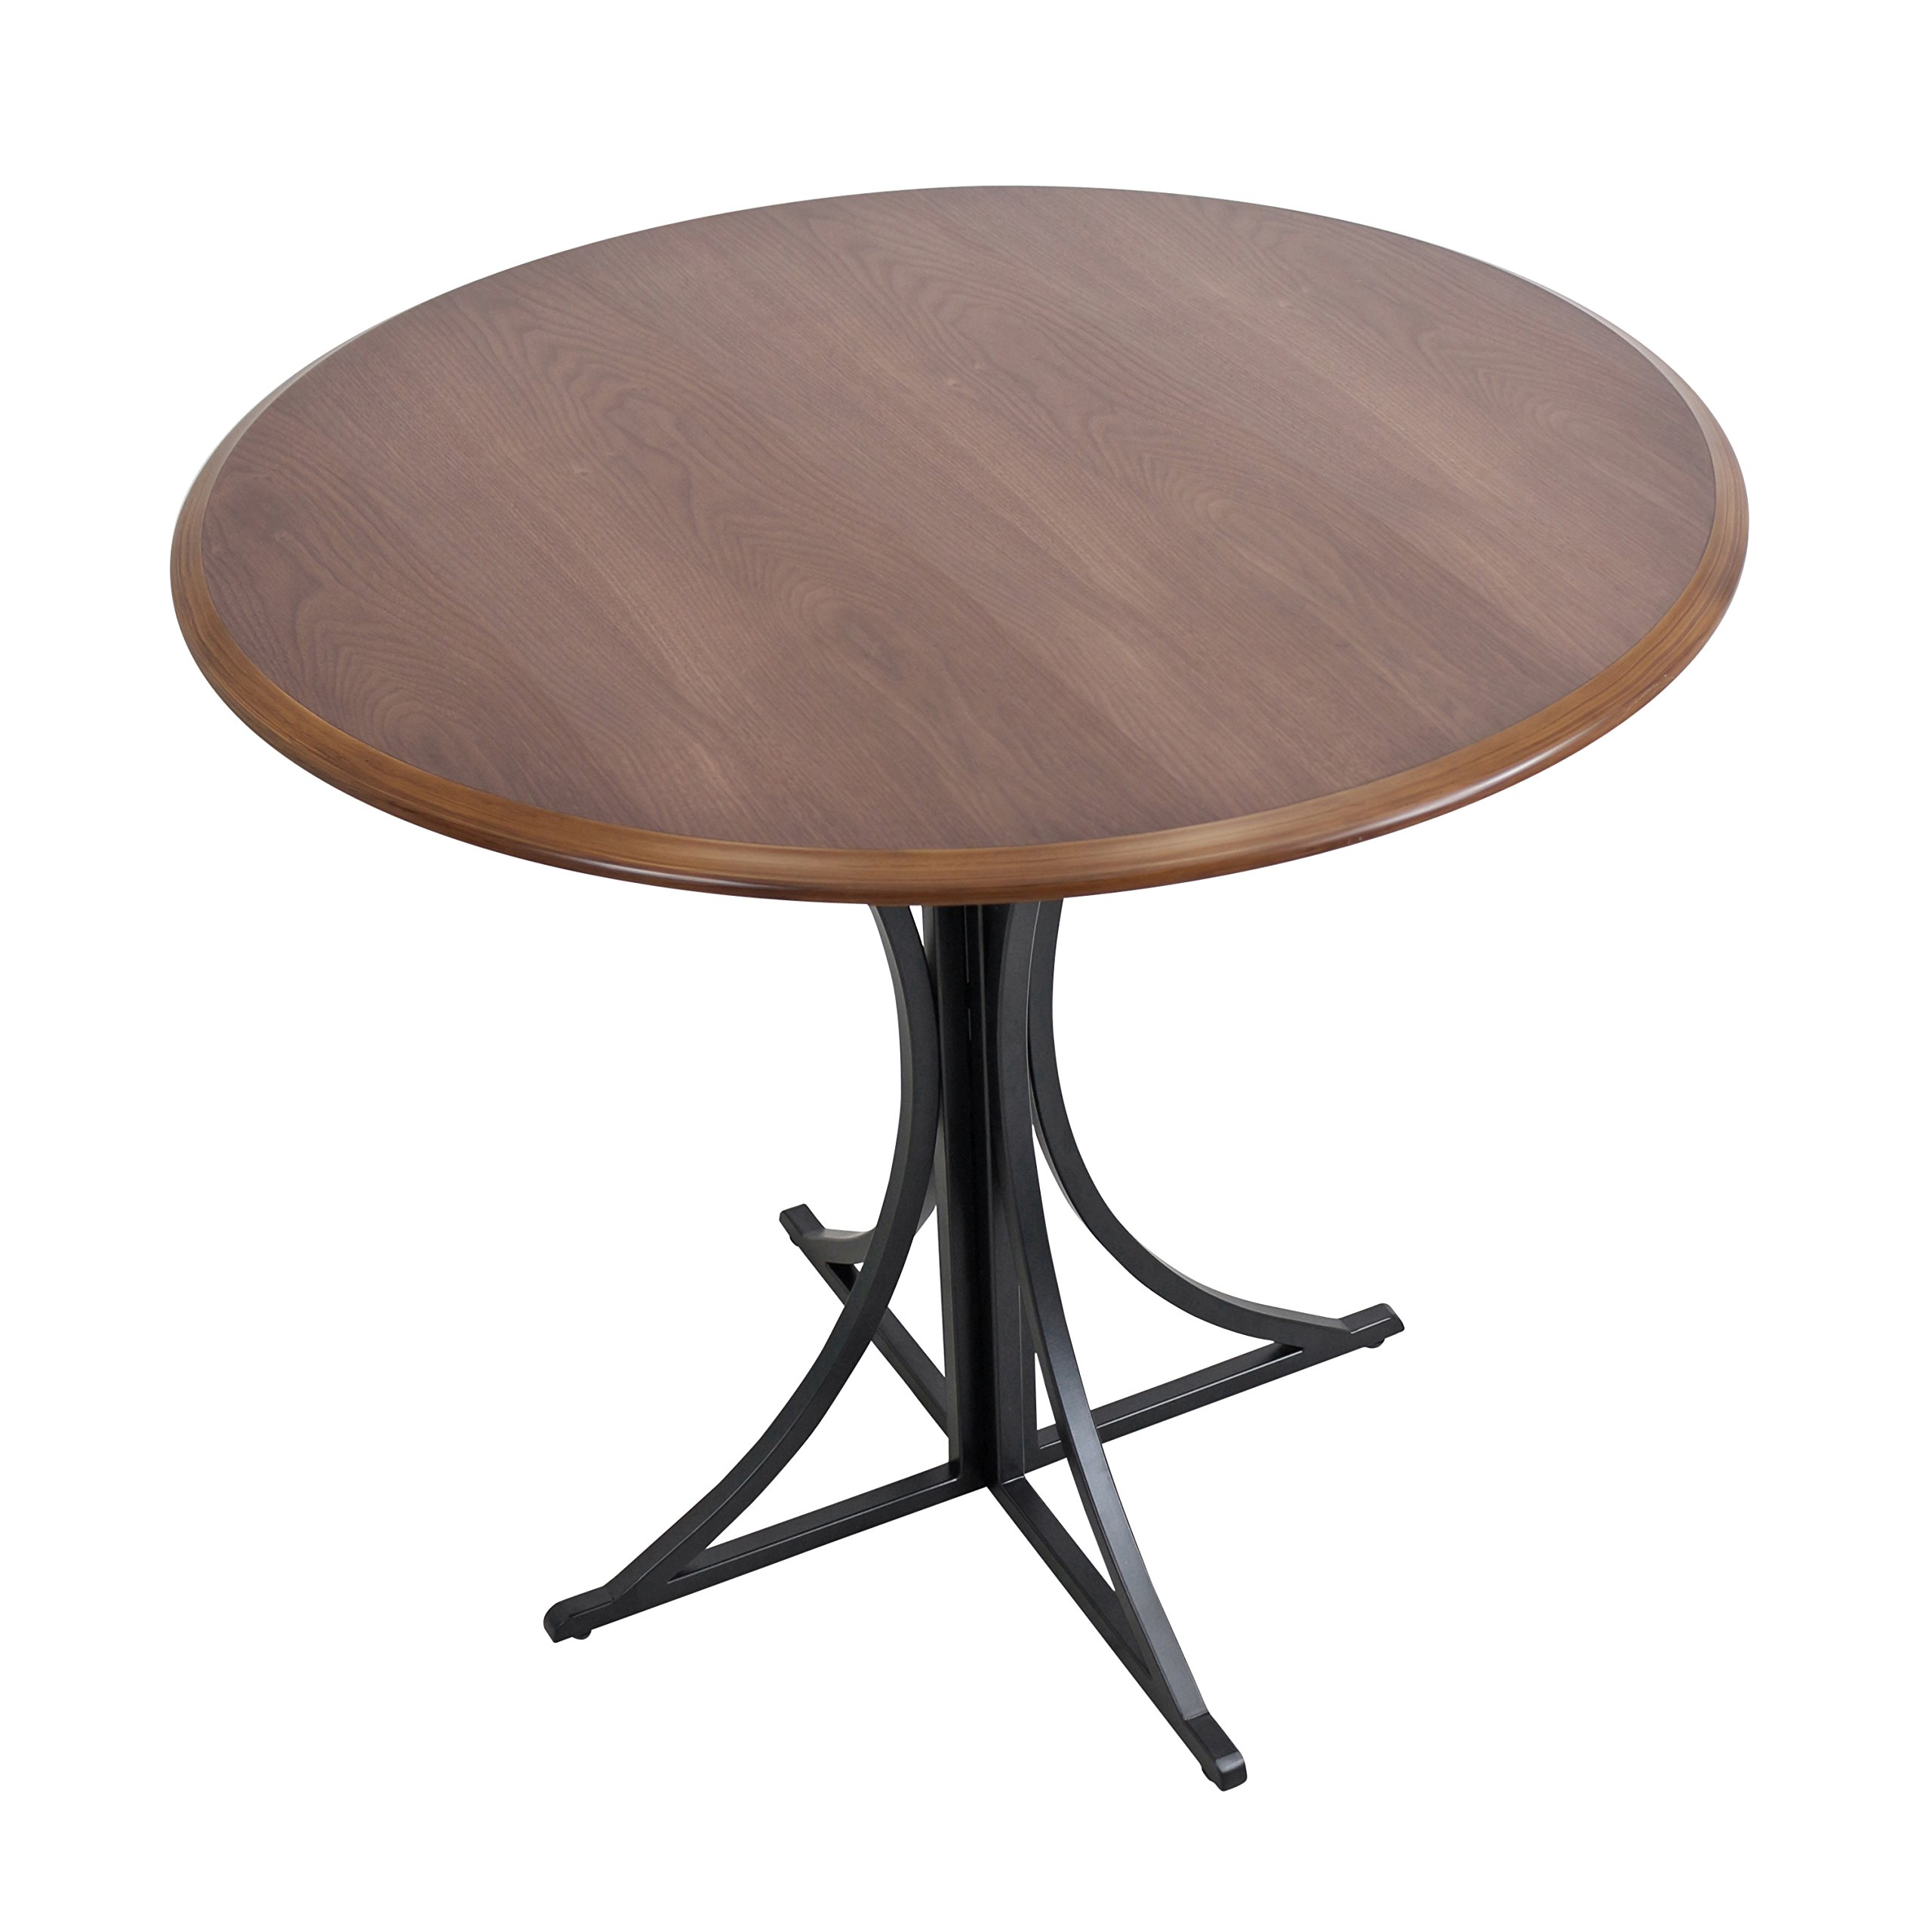 WOYBR DT WL+BK Wood, Metal Boro Dining Table by WOYBR (Image #3)